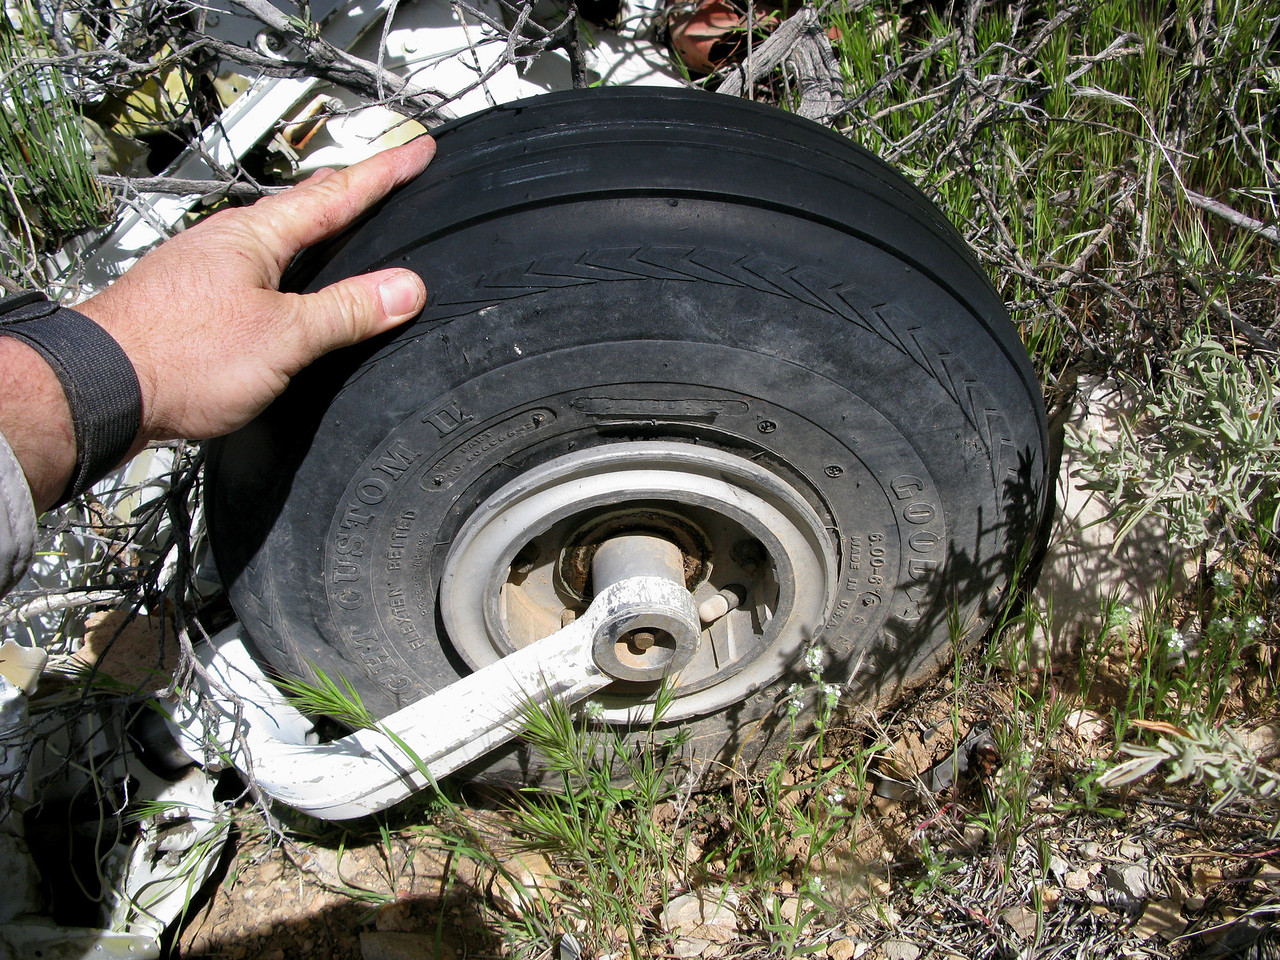 The nose gear tire (Goodyear Flight Custom II) appeared to be brand new with very little if any wear. Probably replaced by a maintenance crew a day or two prior to the accident.